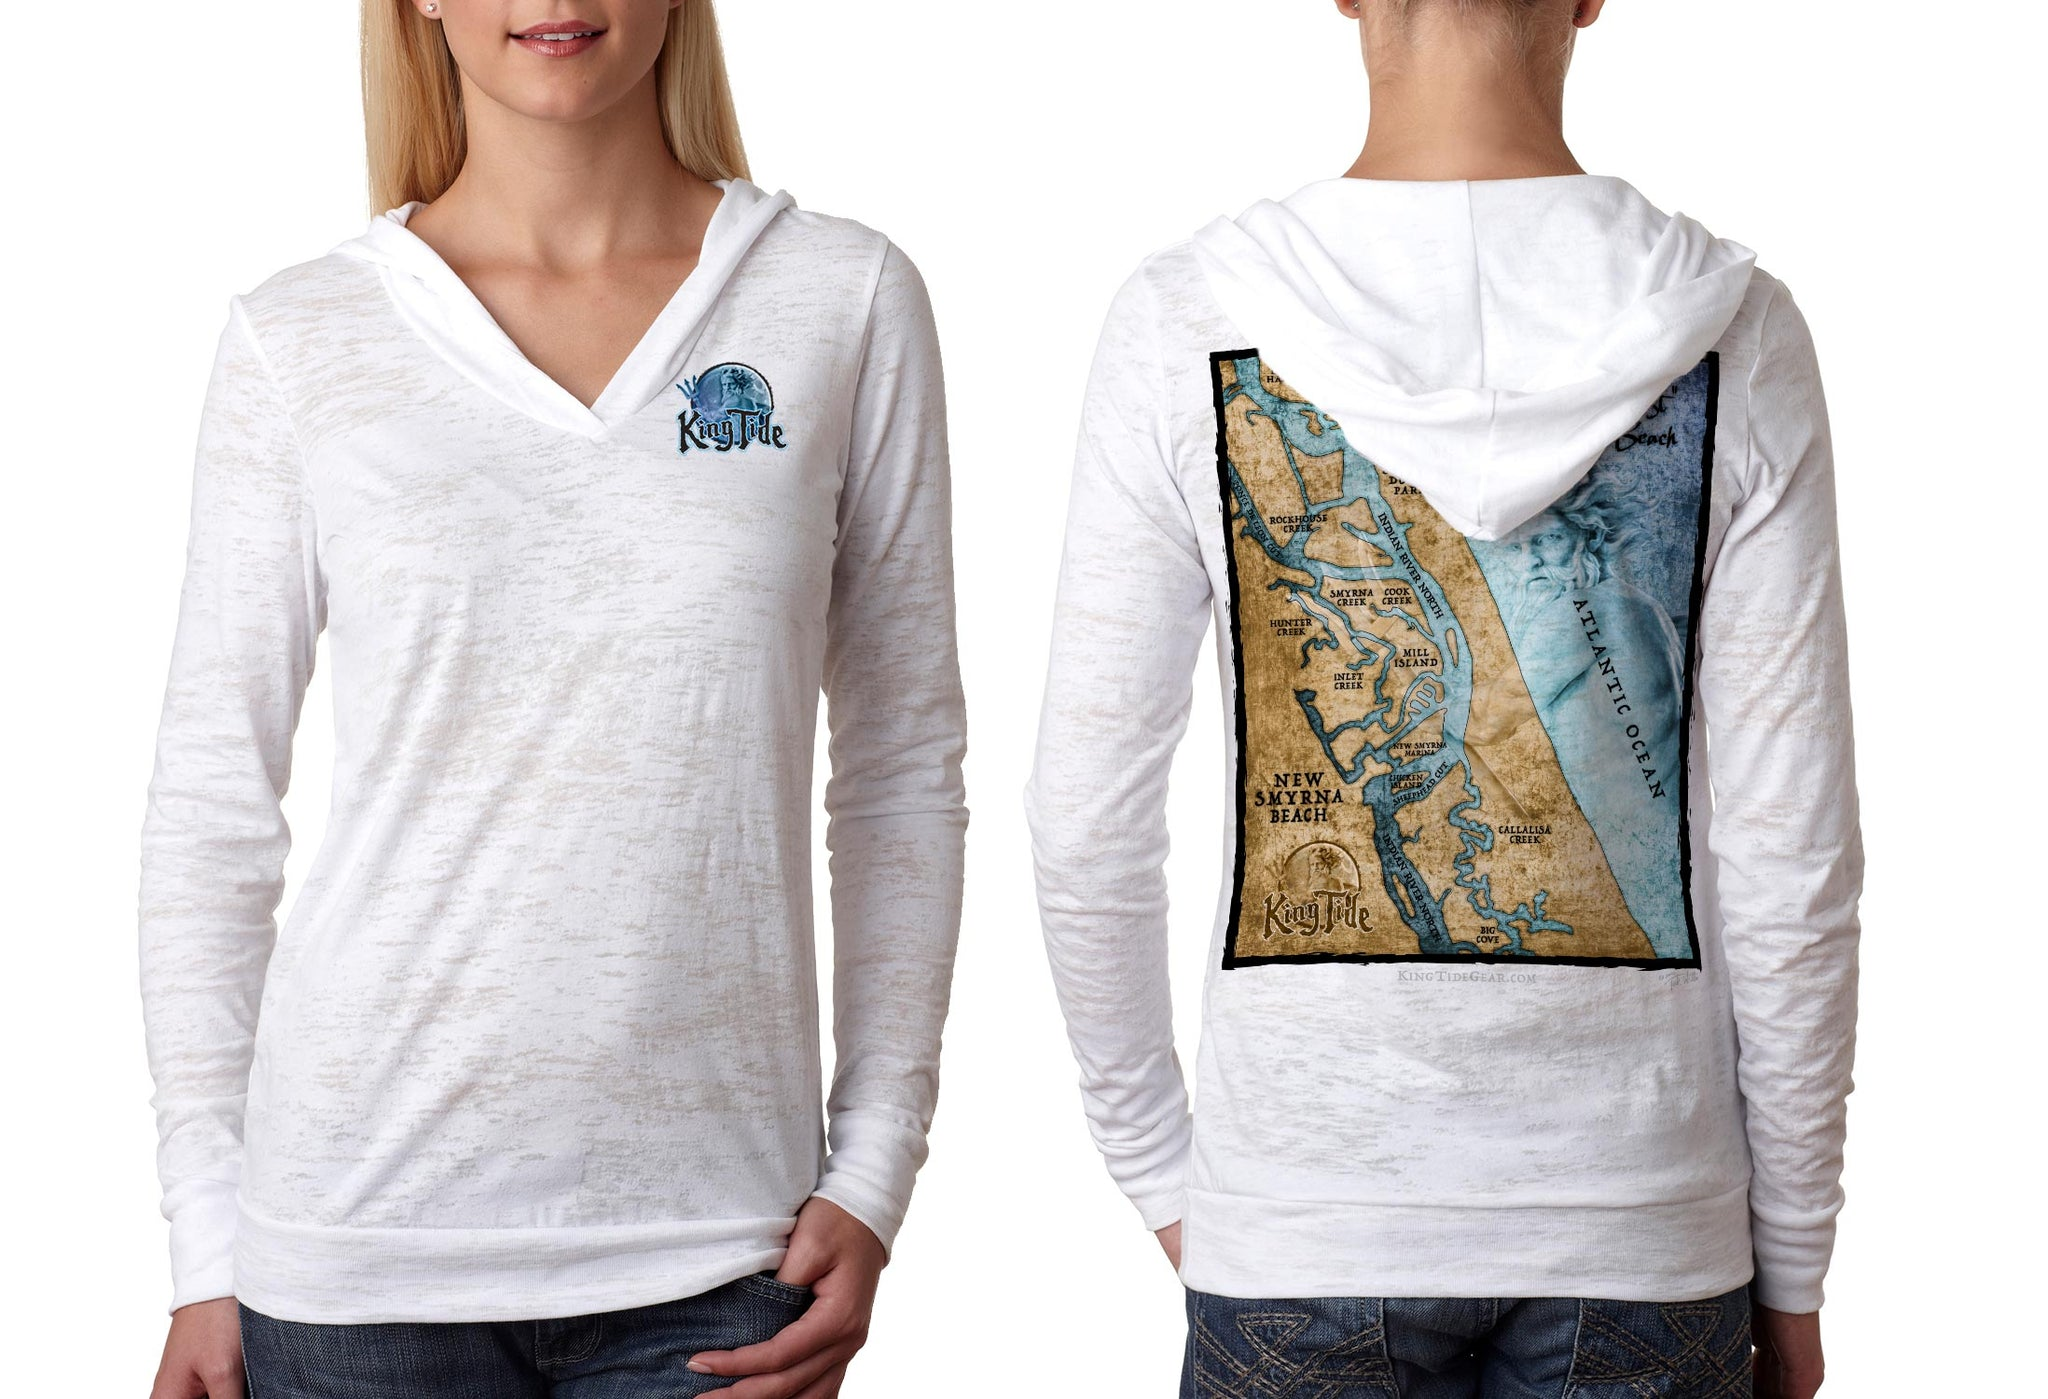 King Tide New Smyrna Florida Burnout Hoodie